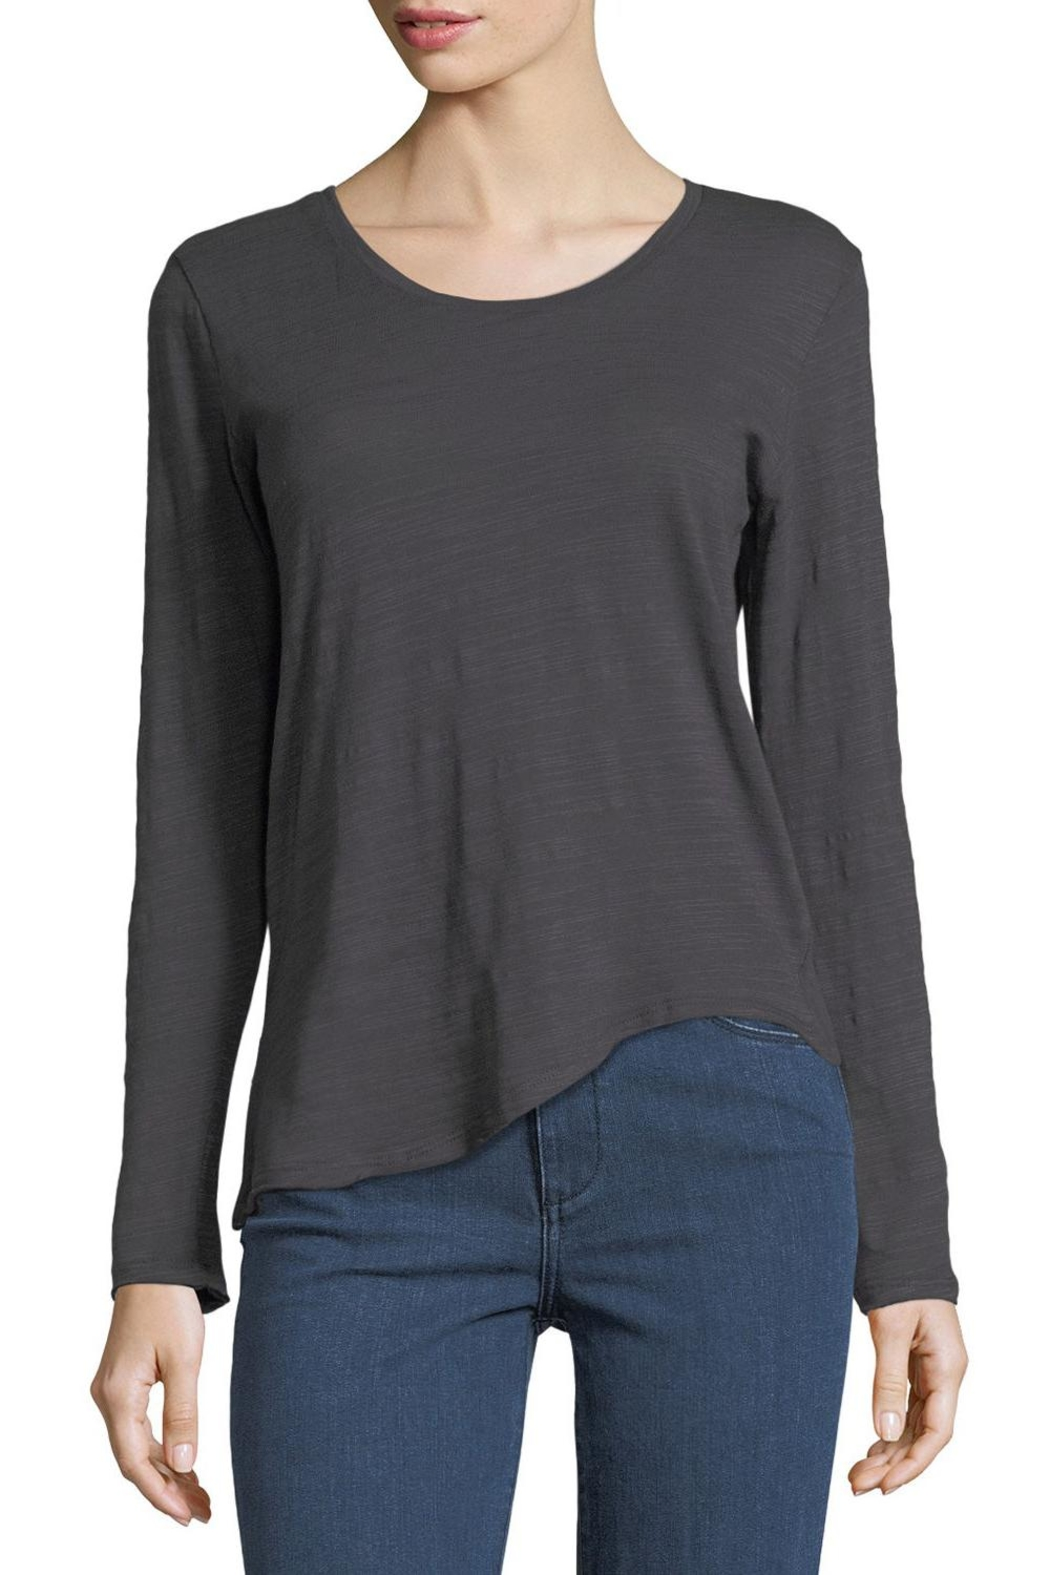 Metric Knits Asymmetric Boat-Neck Tee - Front Cropped Image